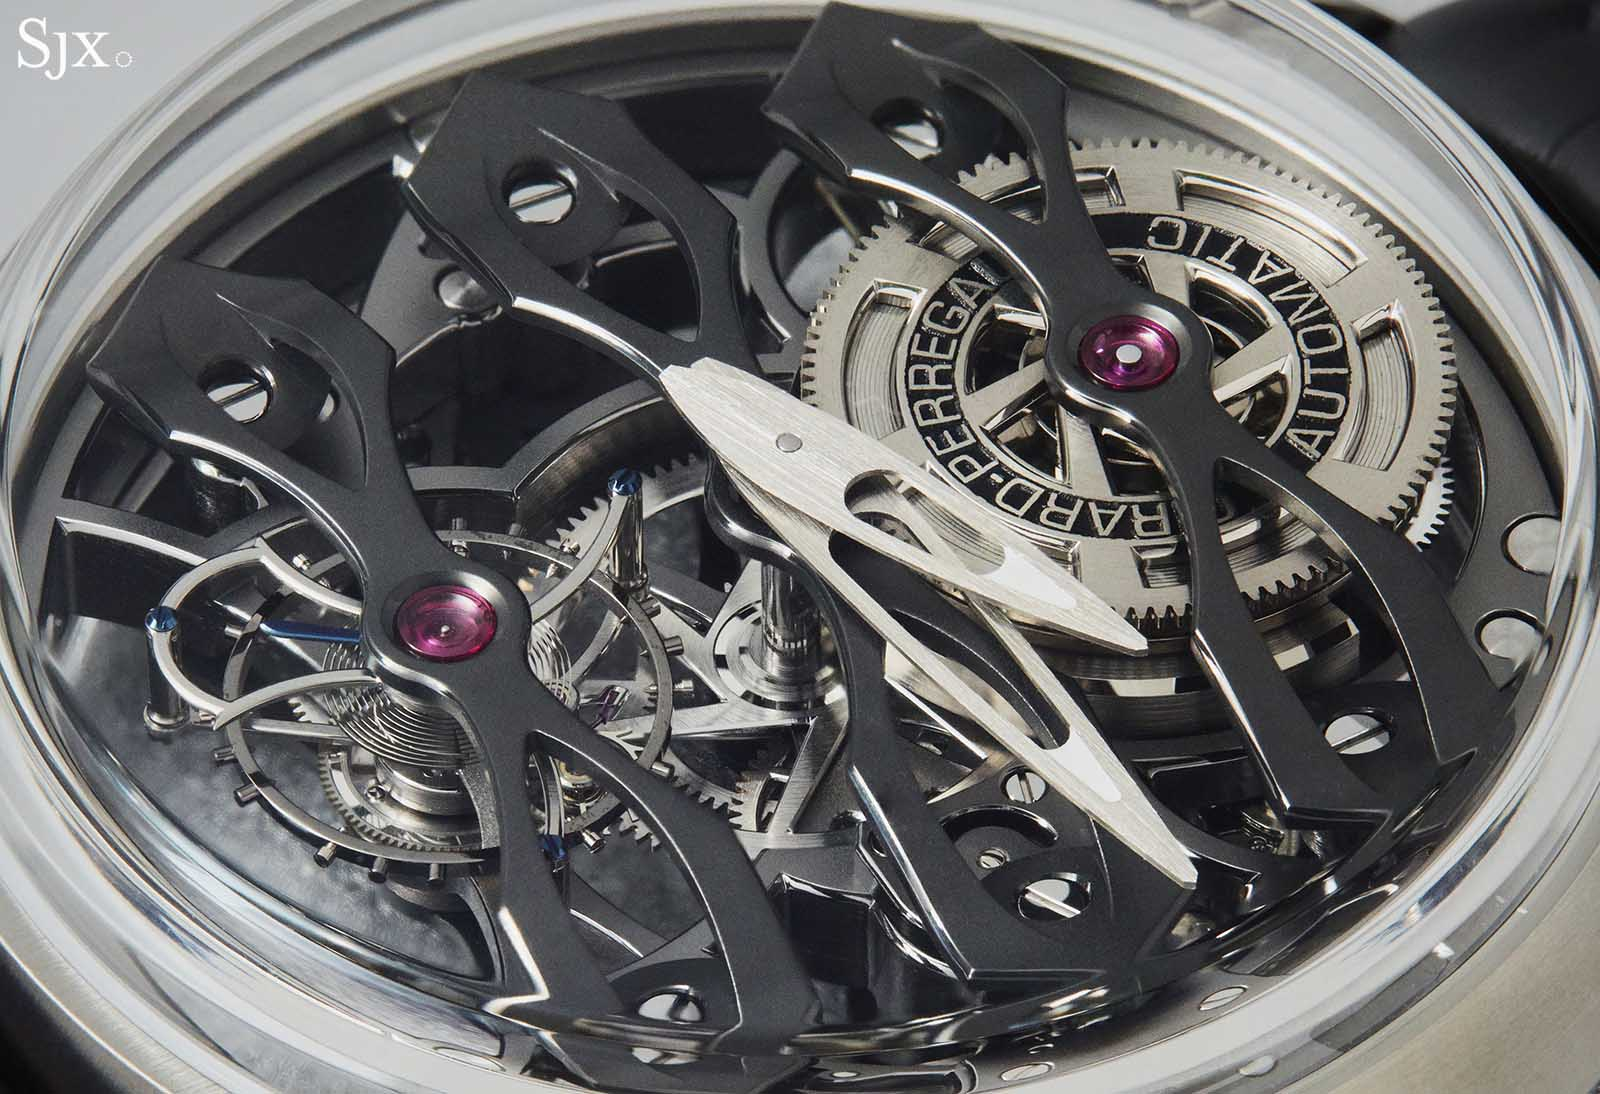 Girard Perregaux Neo-Tourbillon With Three Bridges Skeleton 7